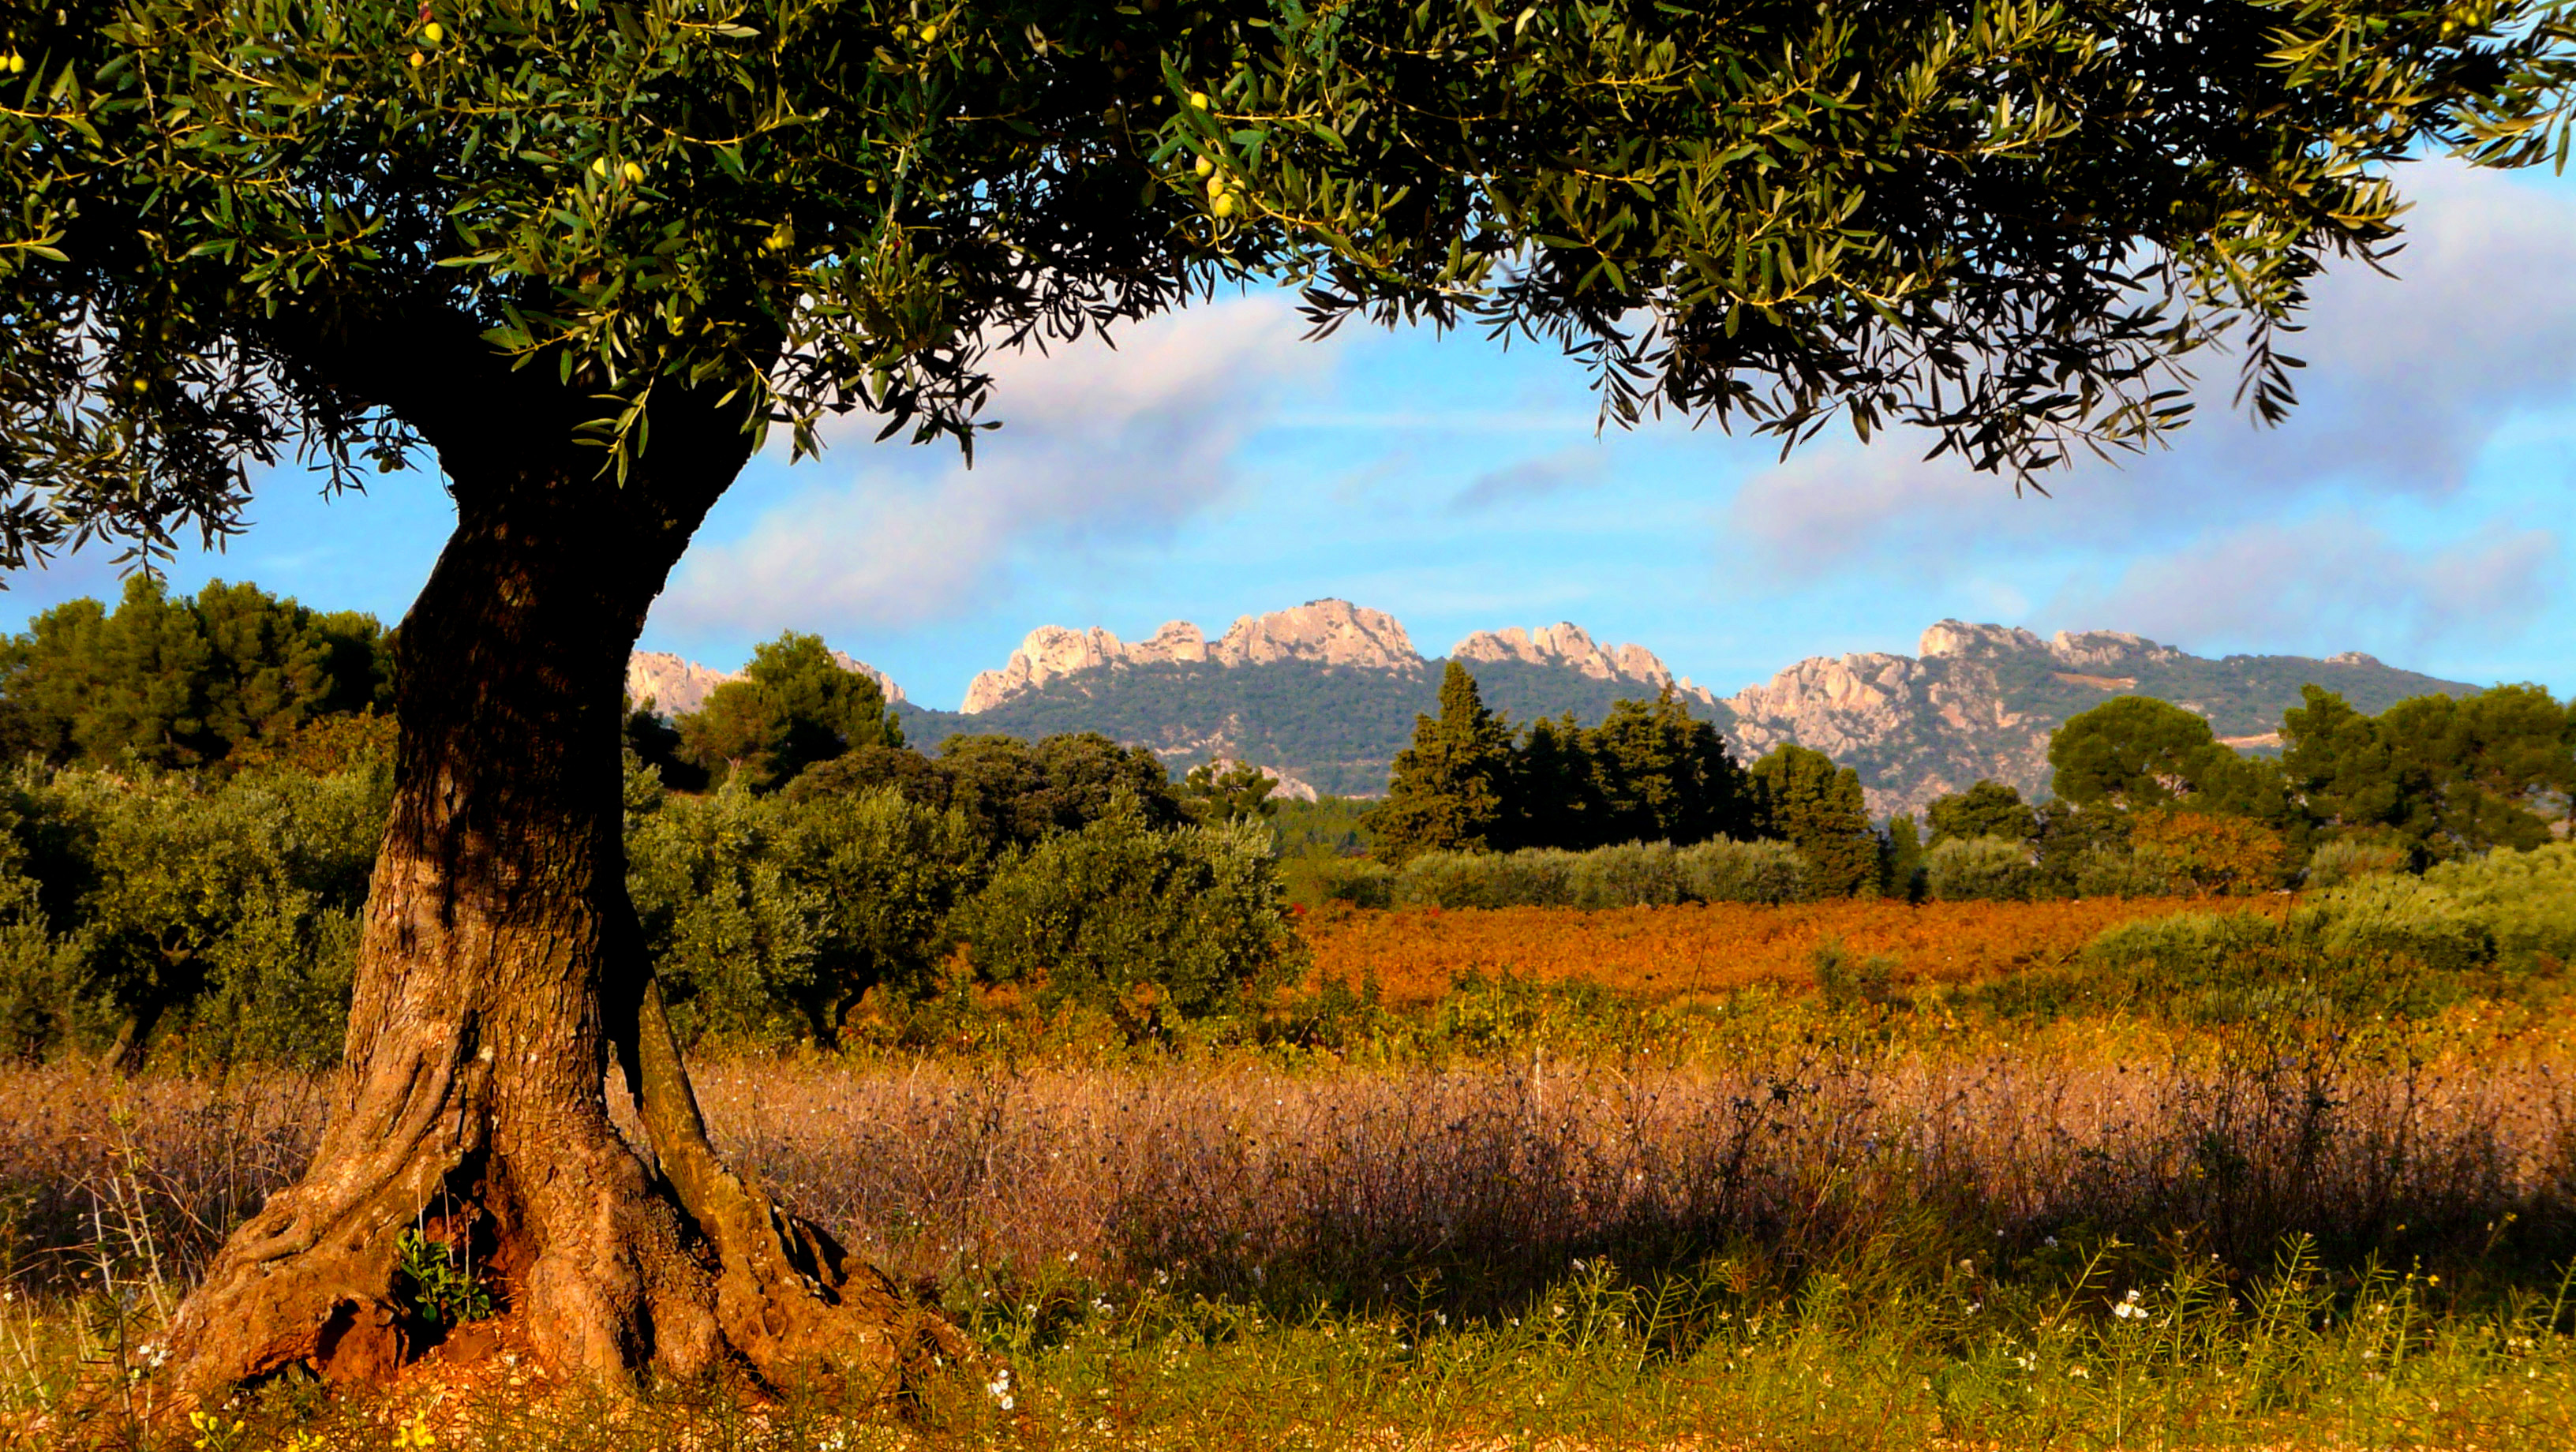 Taxes In France >> 16 days in Loire Valley, Bordeaux, Dordogne, Provence | France Just For You